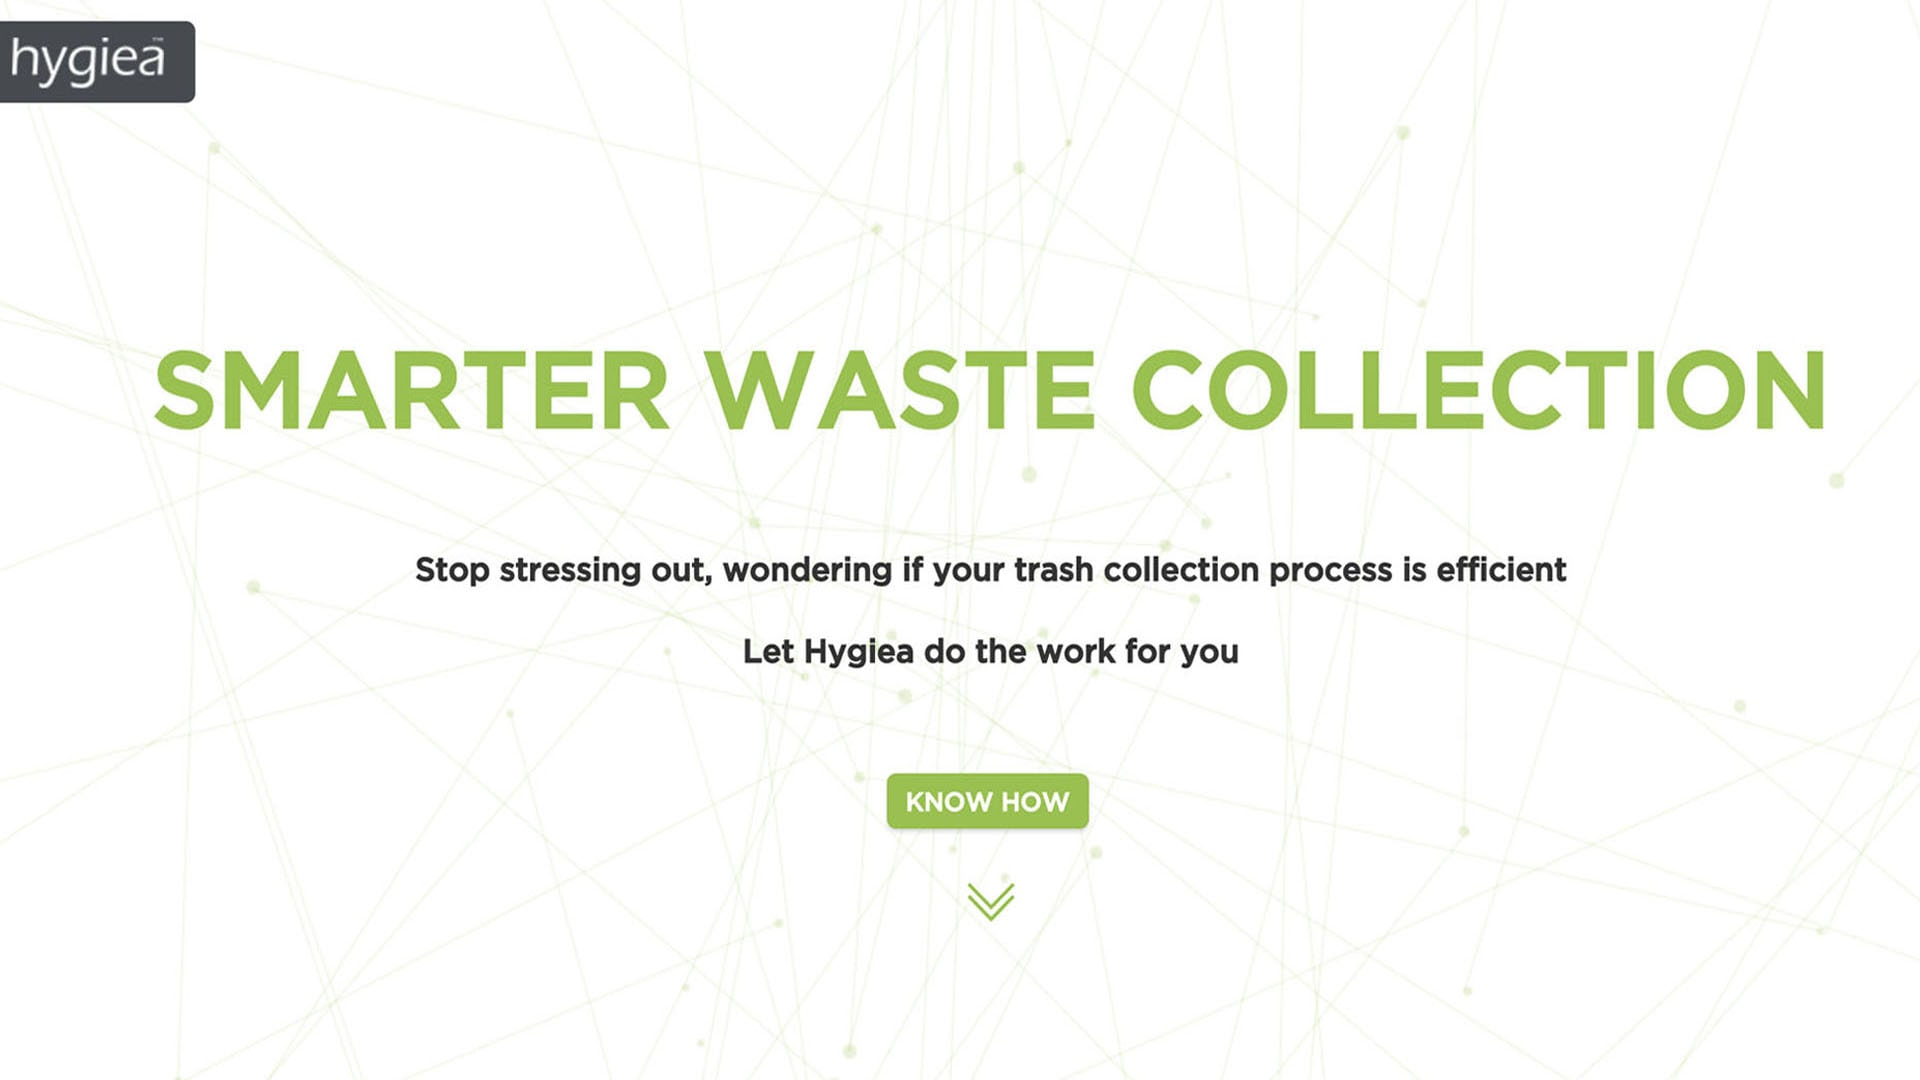 Hygiea Smarter Waste Collection